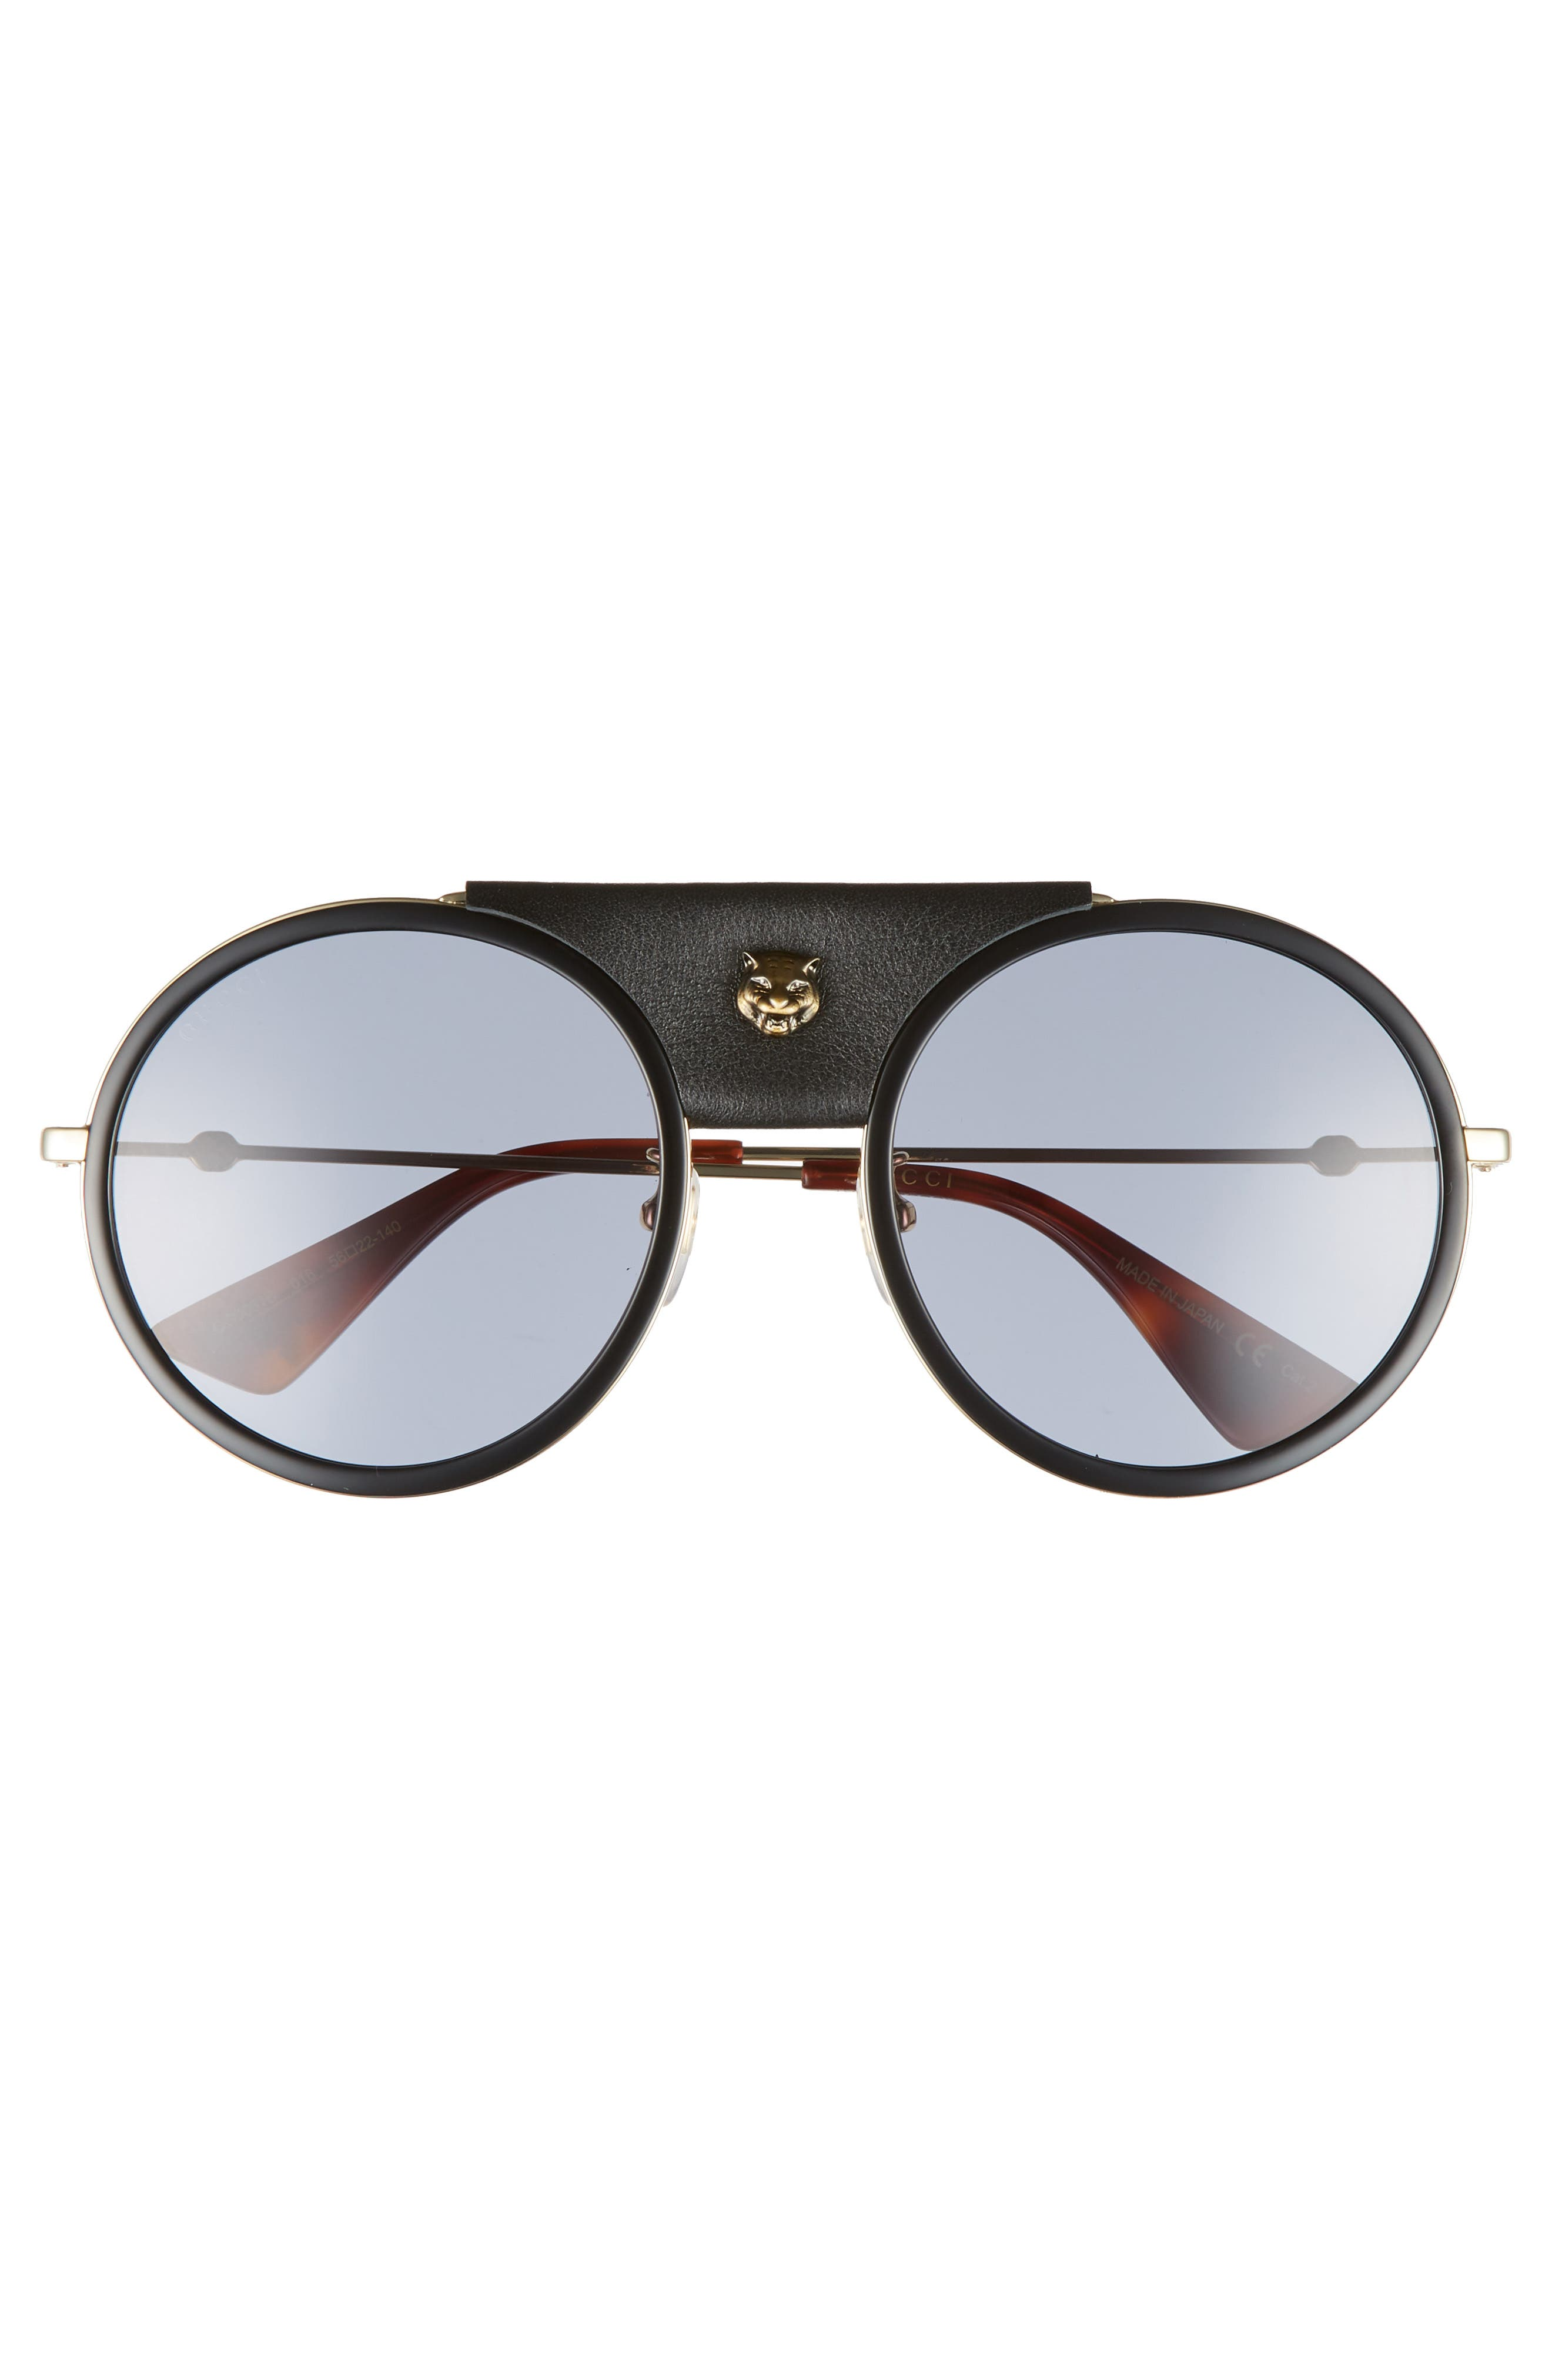 Alternate Image 3  - Gucci 56mm Leather Bridge Aviator Sunglasses